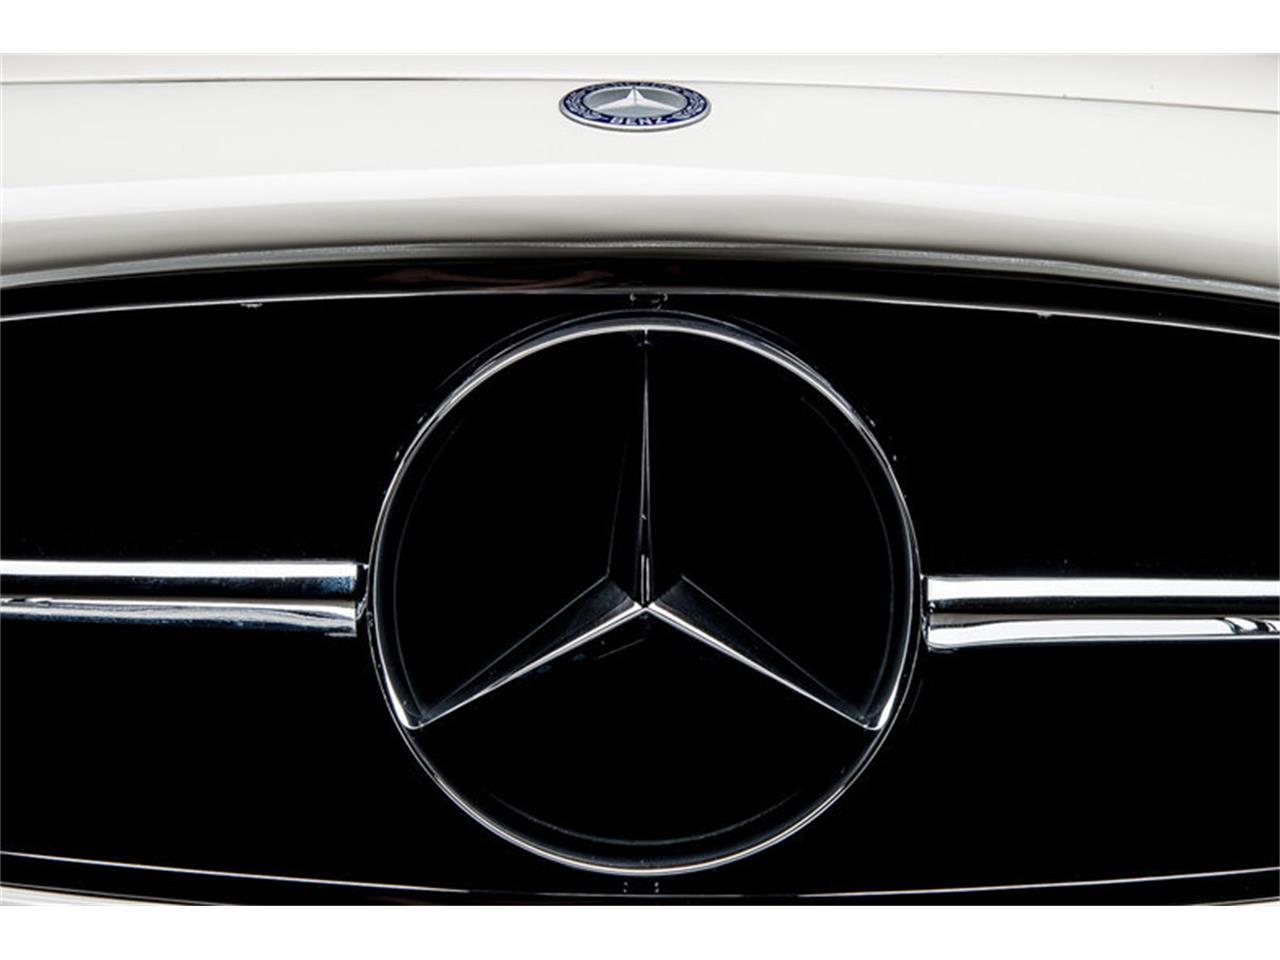 Large Picture of 1963 Mercedes-Benz 300SL Roadster Auction Vehicle - EFPZ